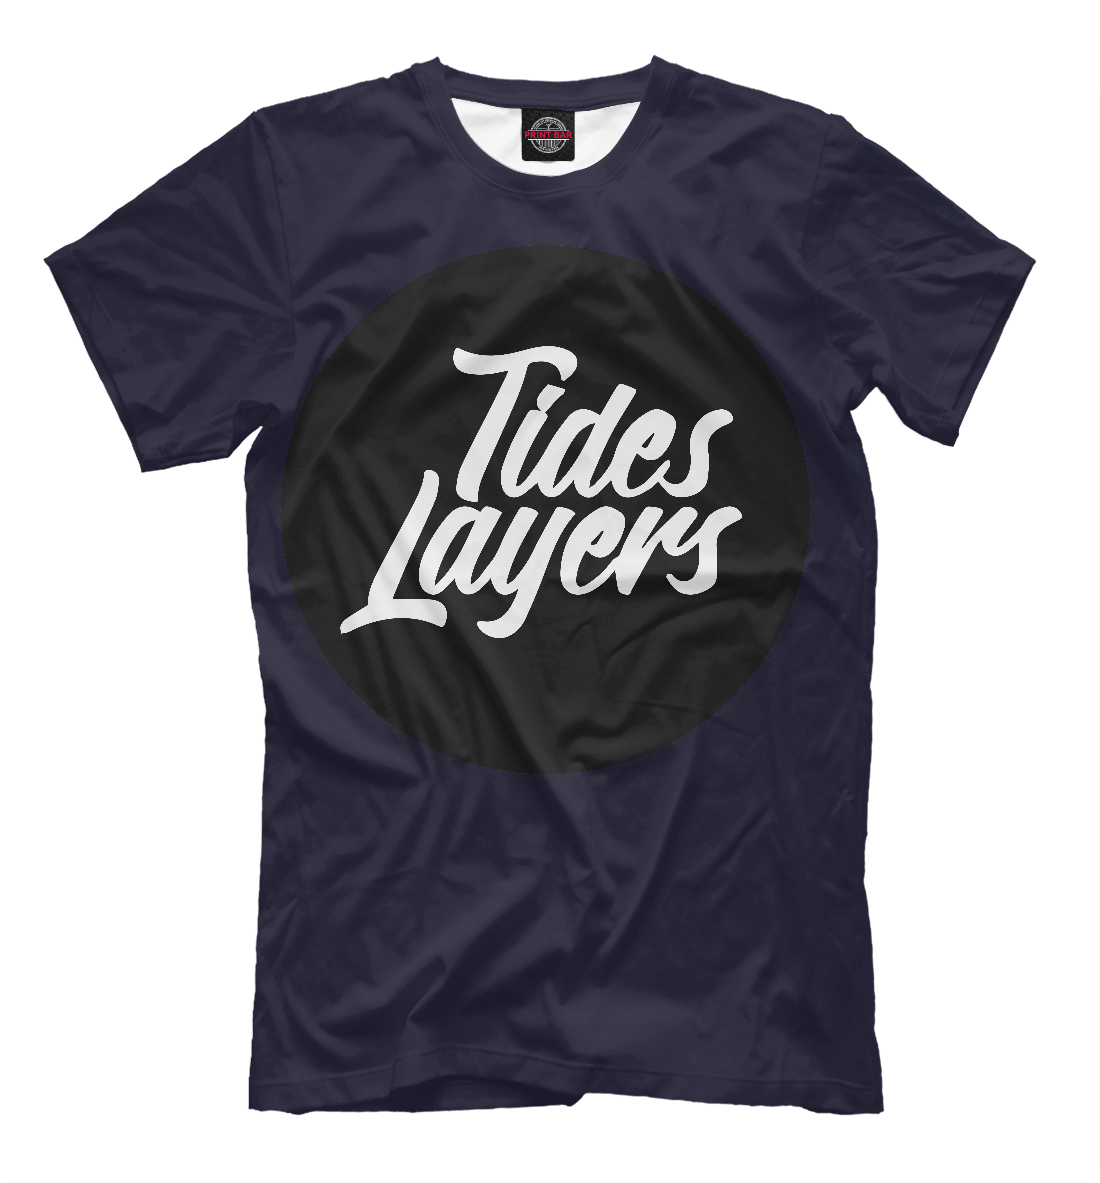 Tides Layers